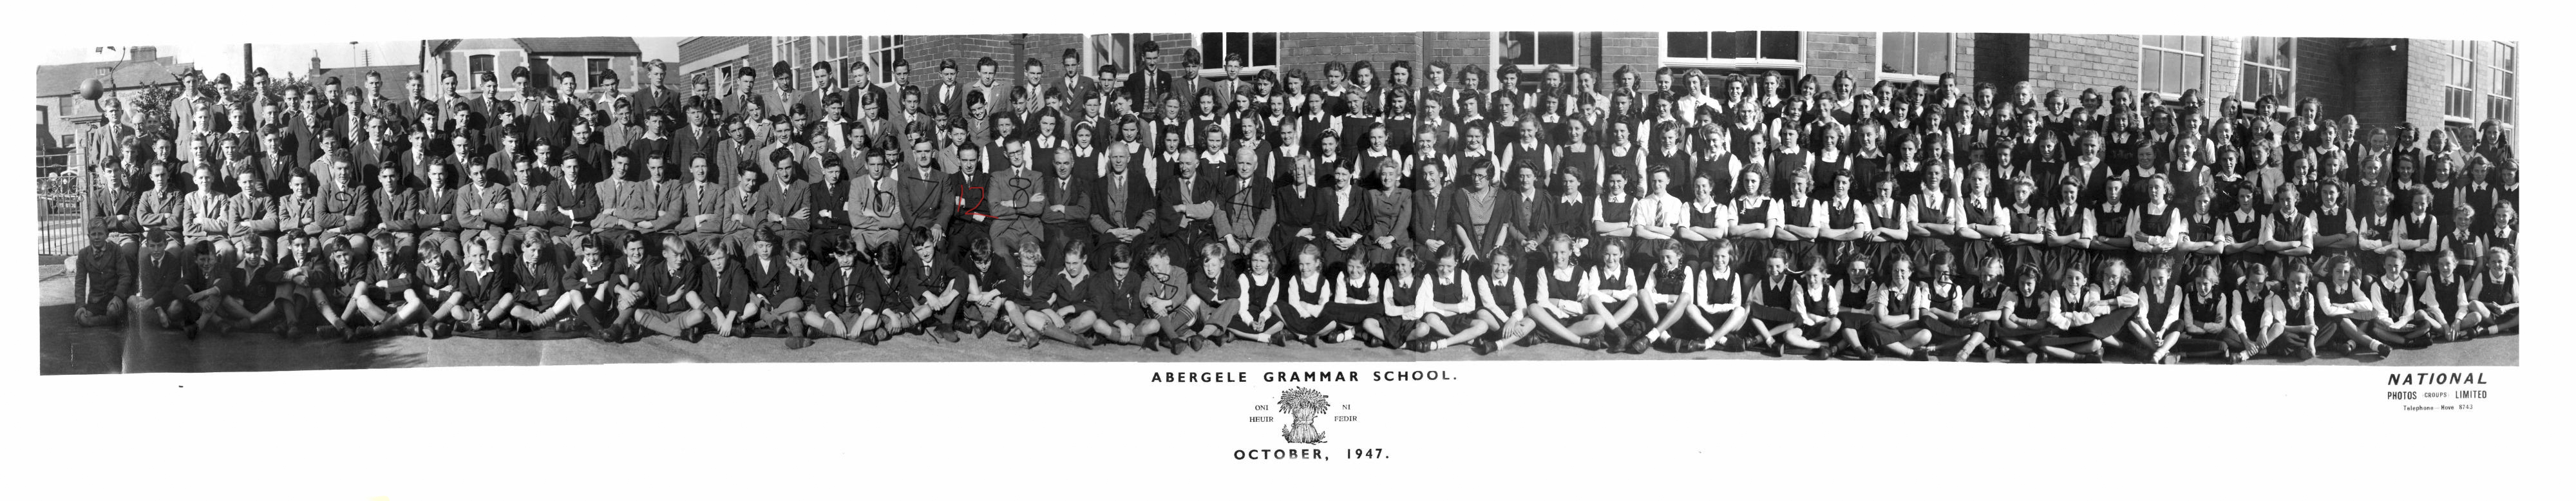 School Photograph of Abergele Grammar School while Ralph Steadman was there.